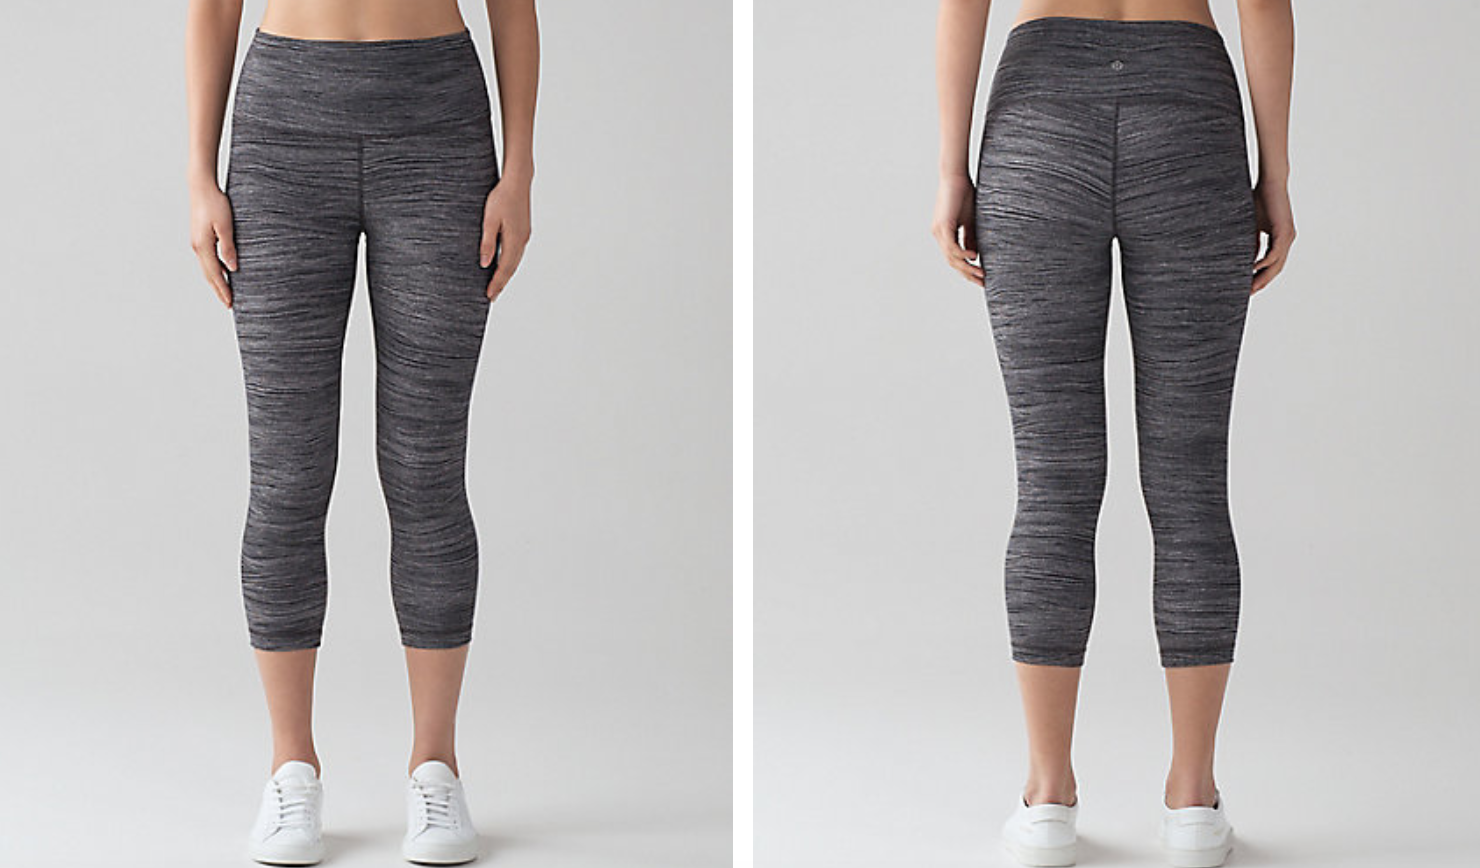 https://api.shopstyle.com/action/apiVisitRetailer?url=https%3A%2F%2Fshop.lululemon.com%2Fp%2Fwomen-crops%2FWunder-Under-Crop-Hi-Rise-Full-On-Lux%2F_%2Fprod2080039%3Frcnt%3D12%26N%3D1z13ziiZ7z5%26cnt%3D59%26color%3DLW6AI3S_029270&site=www.shopstyle.ca&pid=uid6784-25288972-7